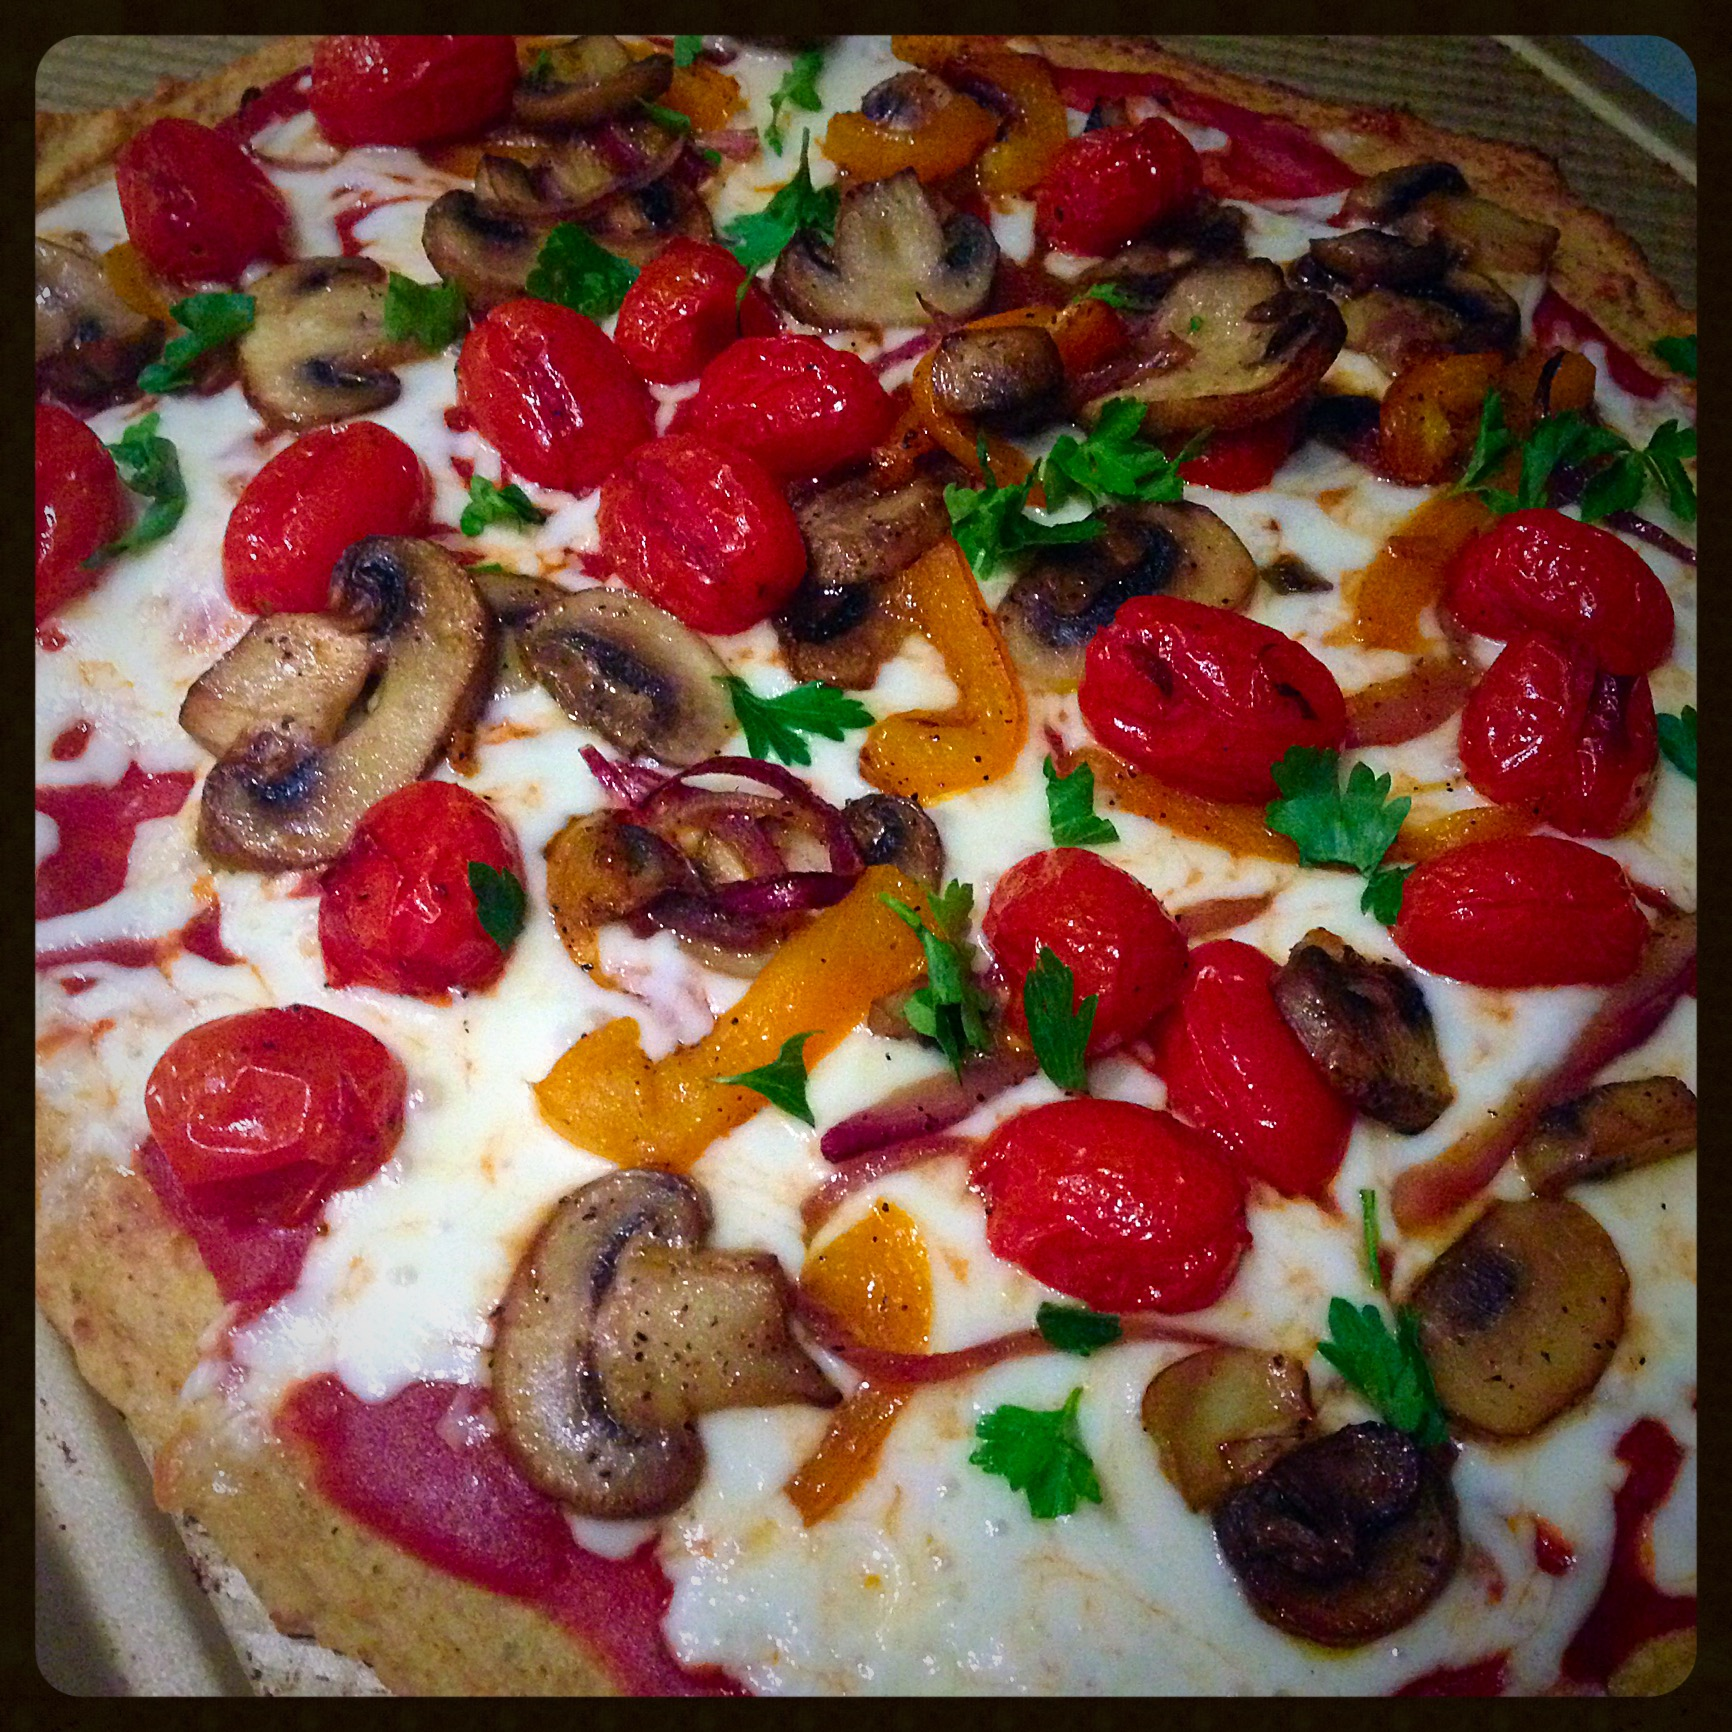 cauliflower crust pizza with roasted veggies